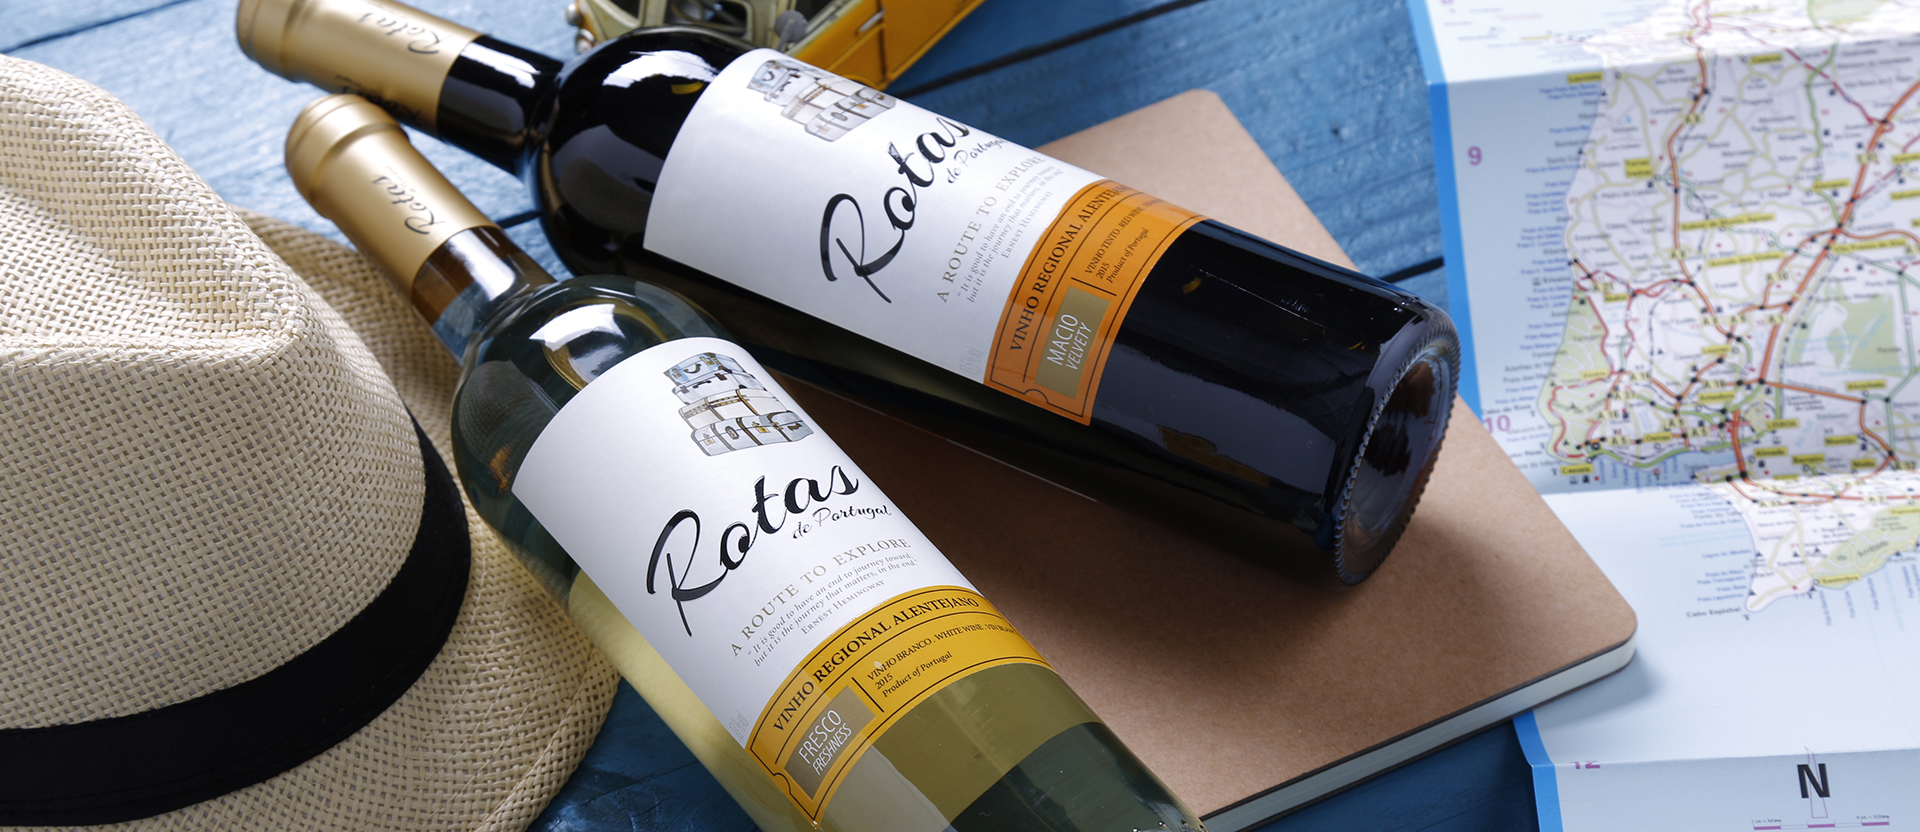 Rotas de Portugal on Packaging of the World